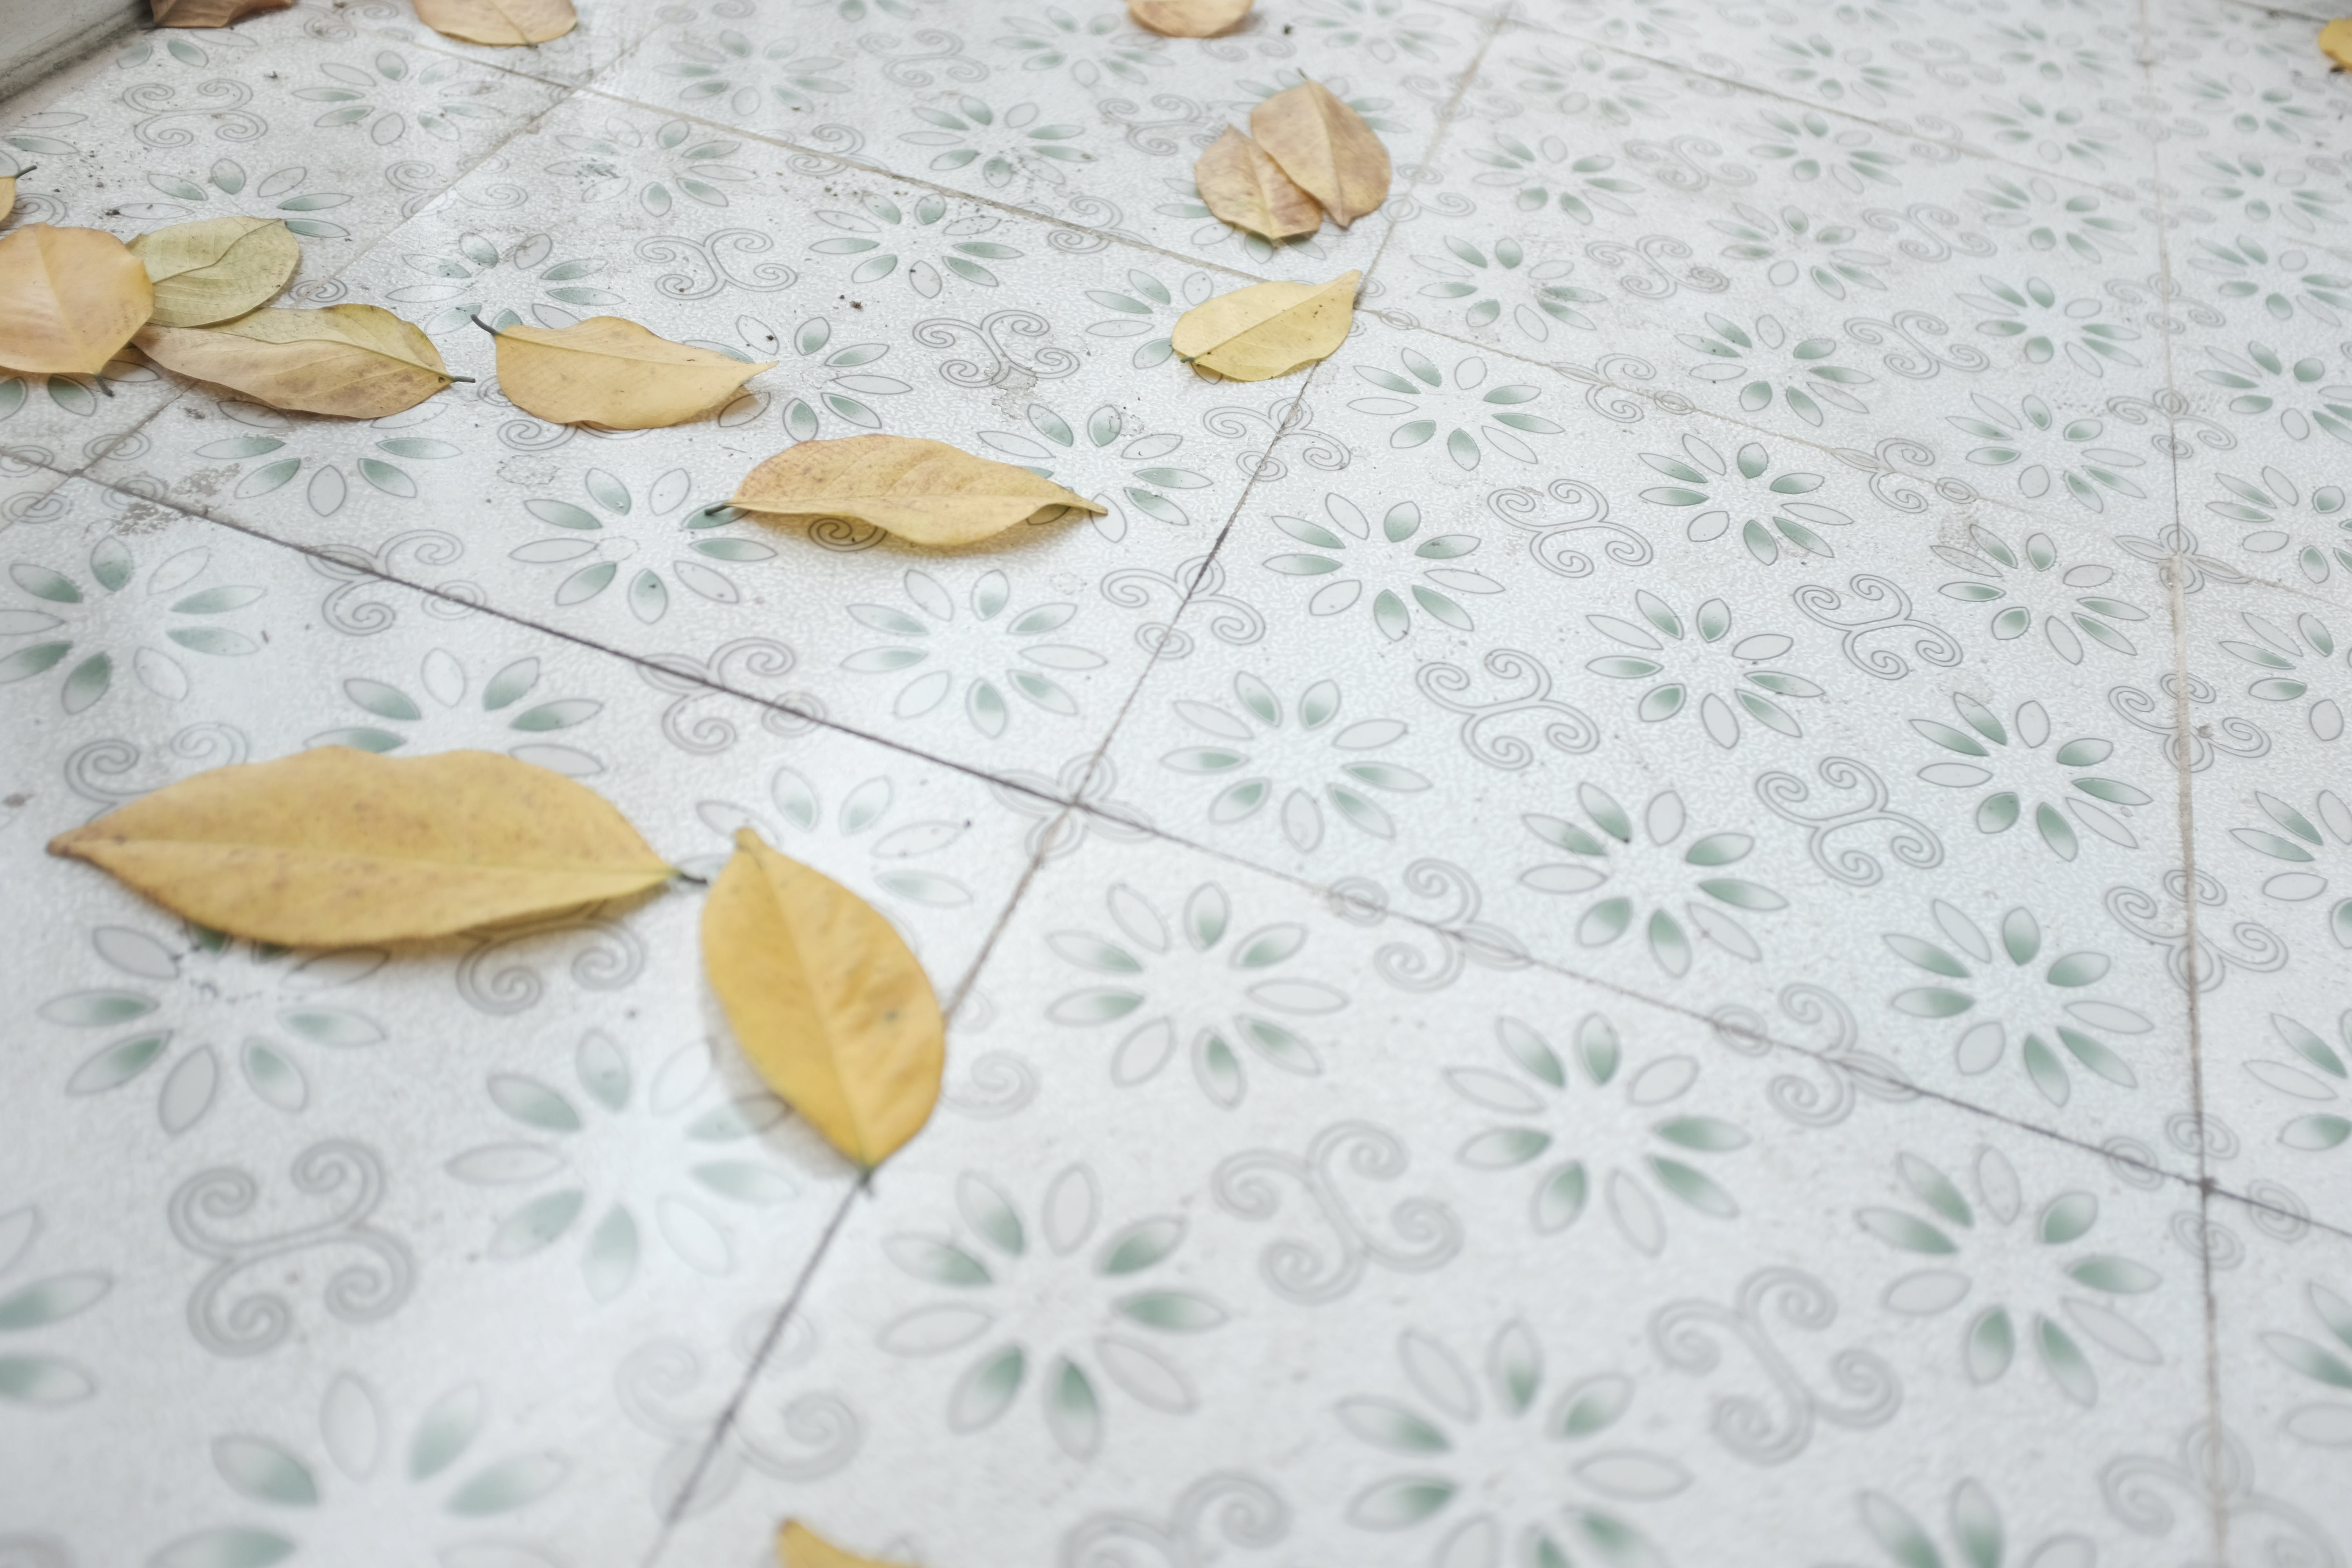 Withered Leaves on Floor